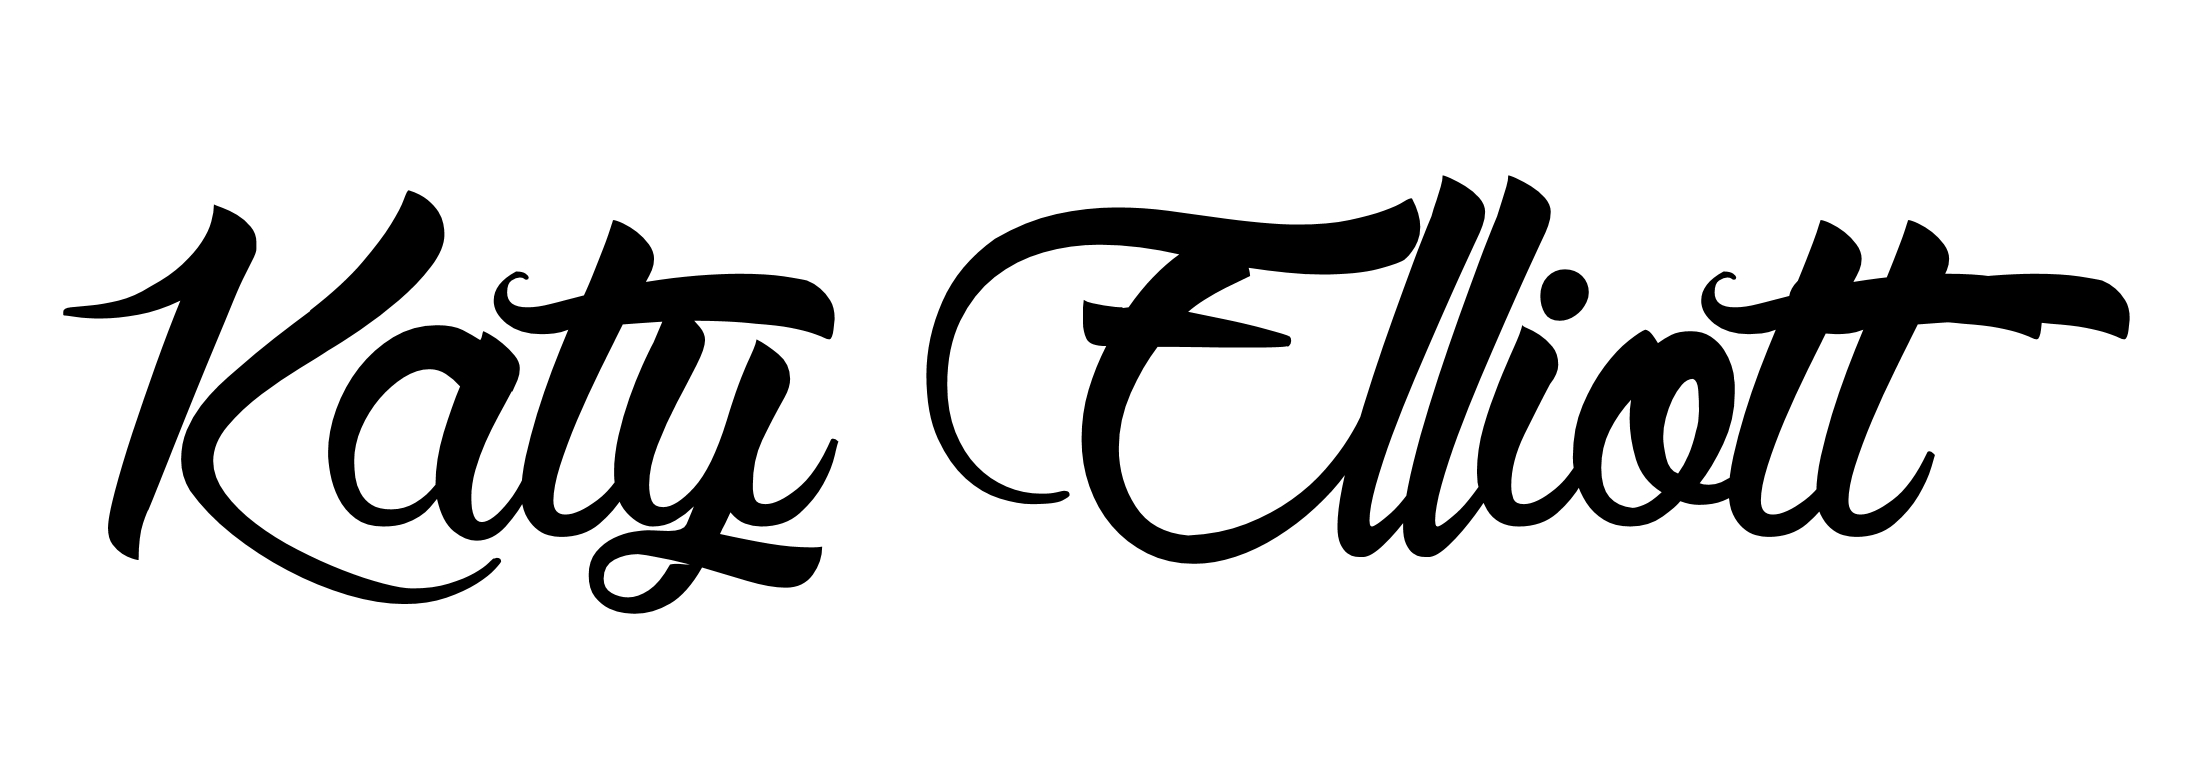 katy elliott's Signature